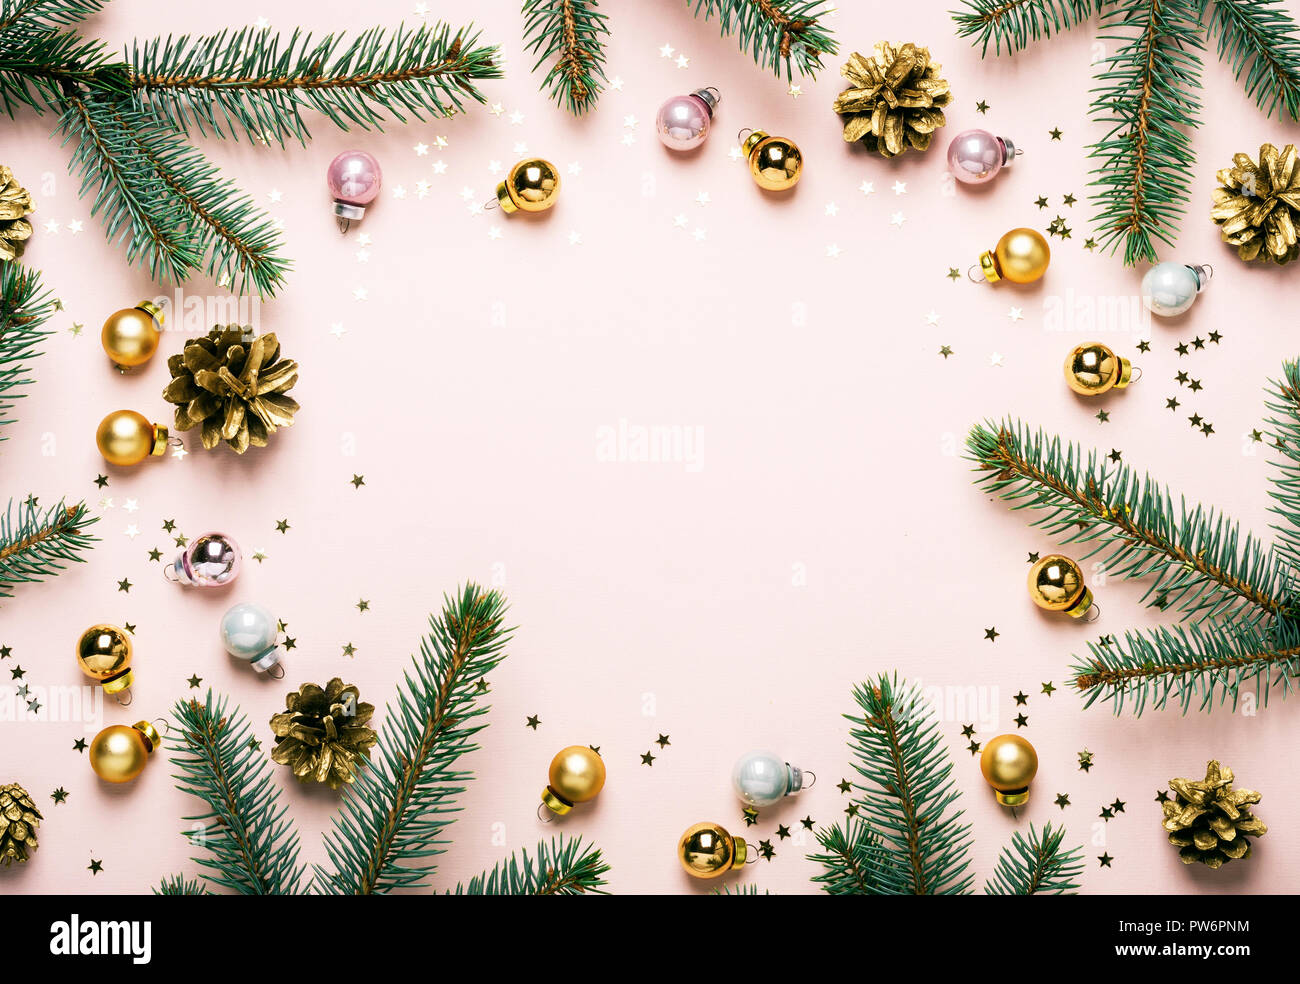 Pastel Pink Christmas Festive frame of fir branches, golden balls and confetti. Stock Photo